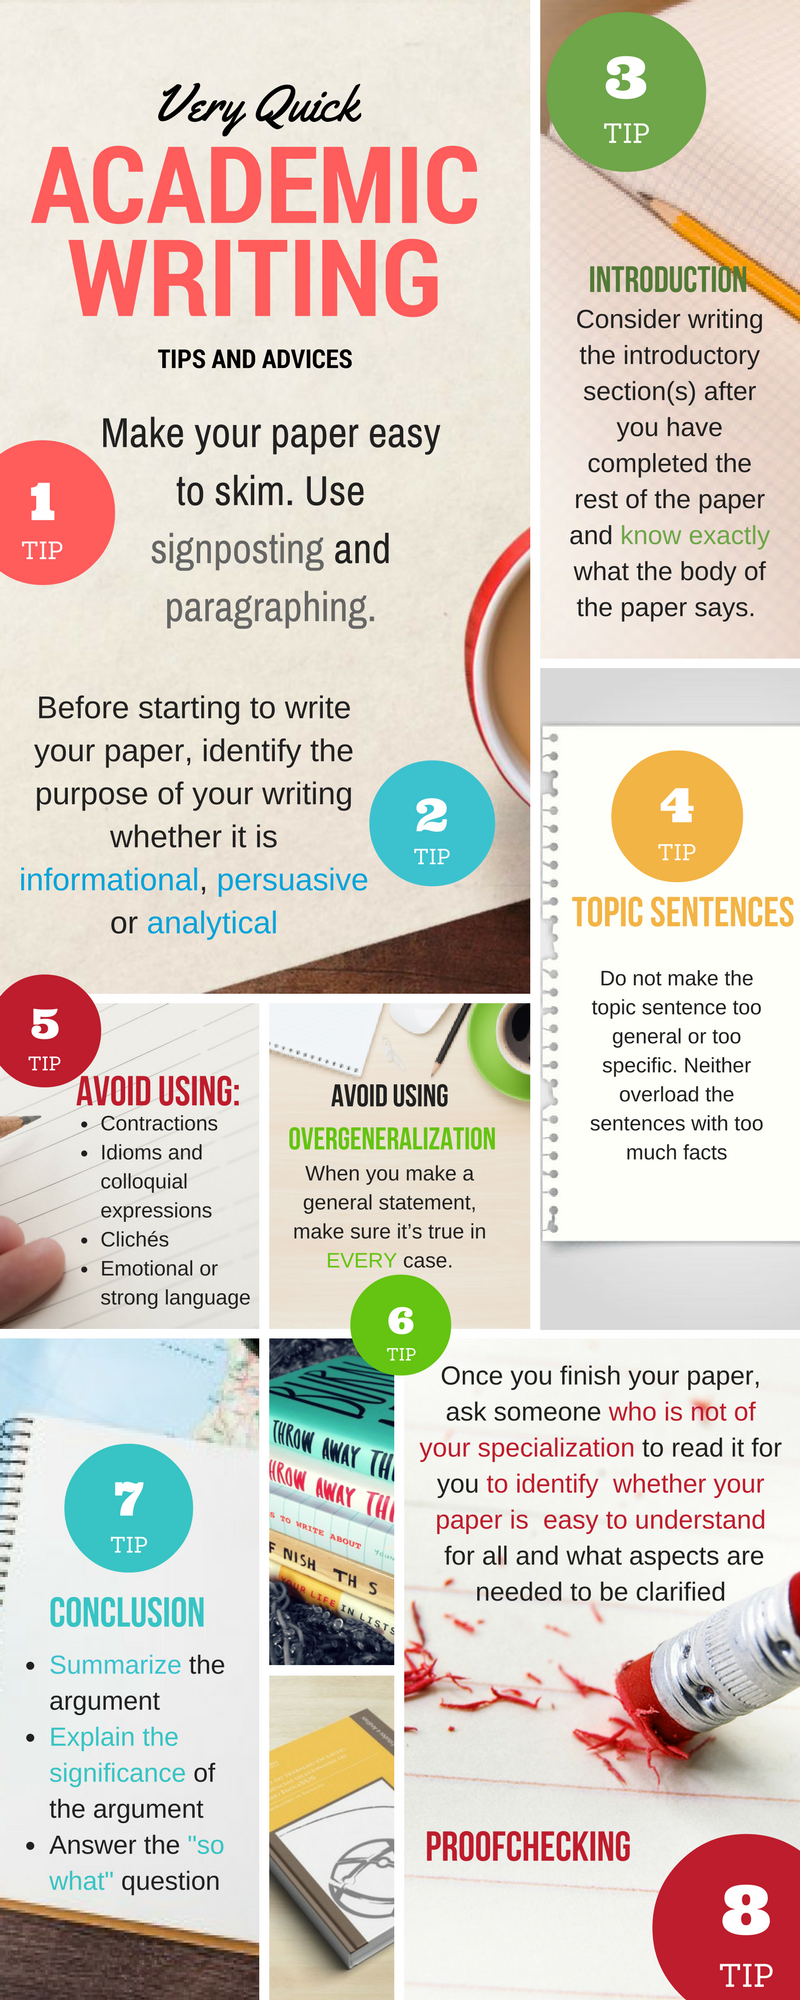 Academic paper writing guide